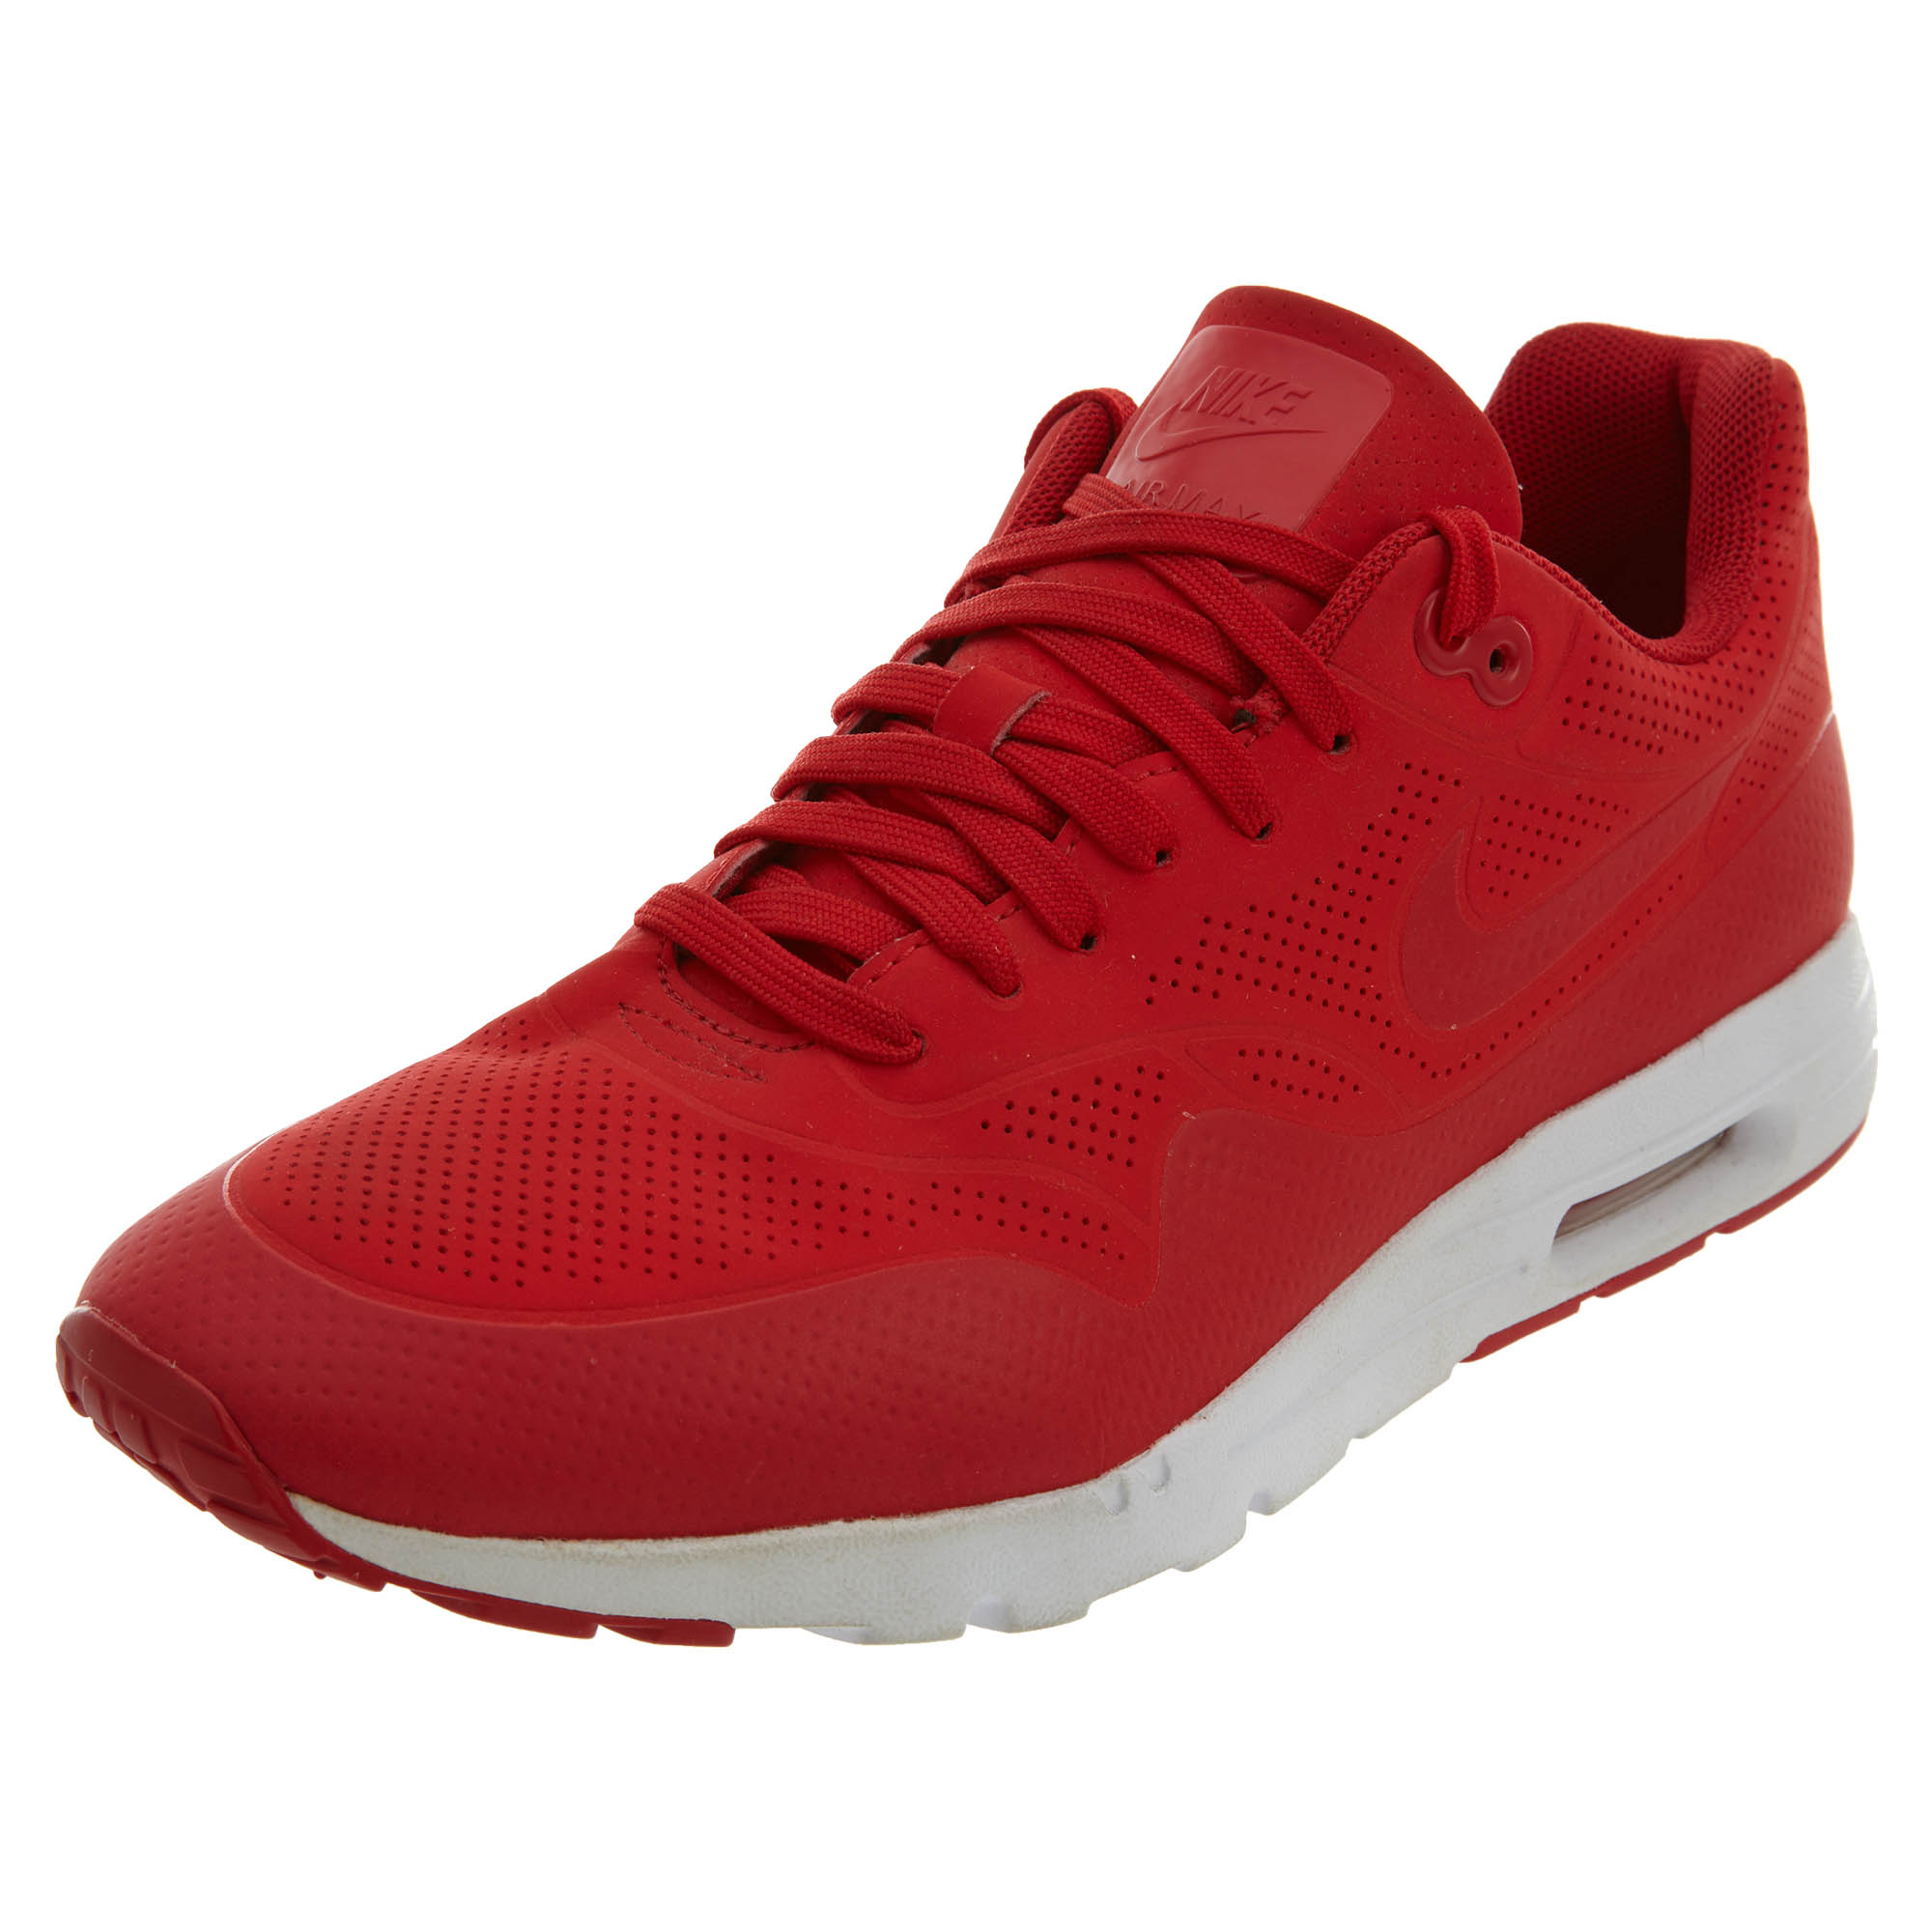 412e61c0239 Details about Nike Womens Air Max 1 Ultra Moire Sneakers 704995-600